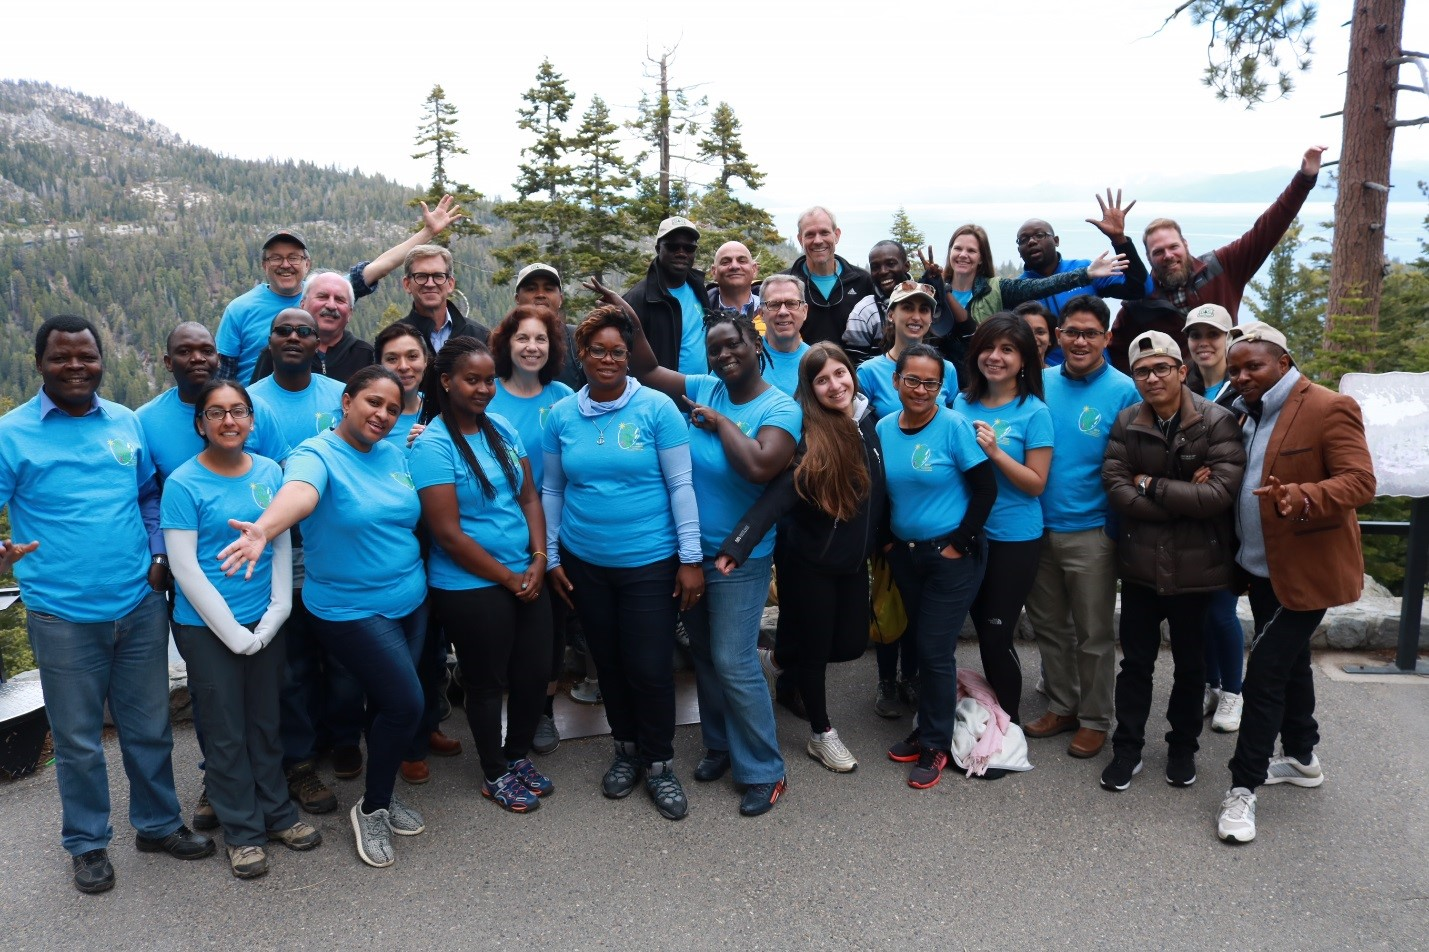 The seminar group poses for a group photo in Lake Tahoe